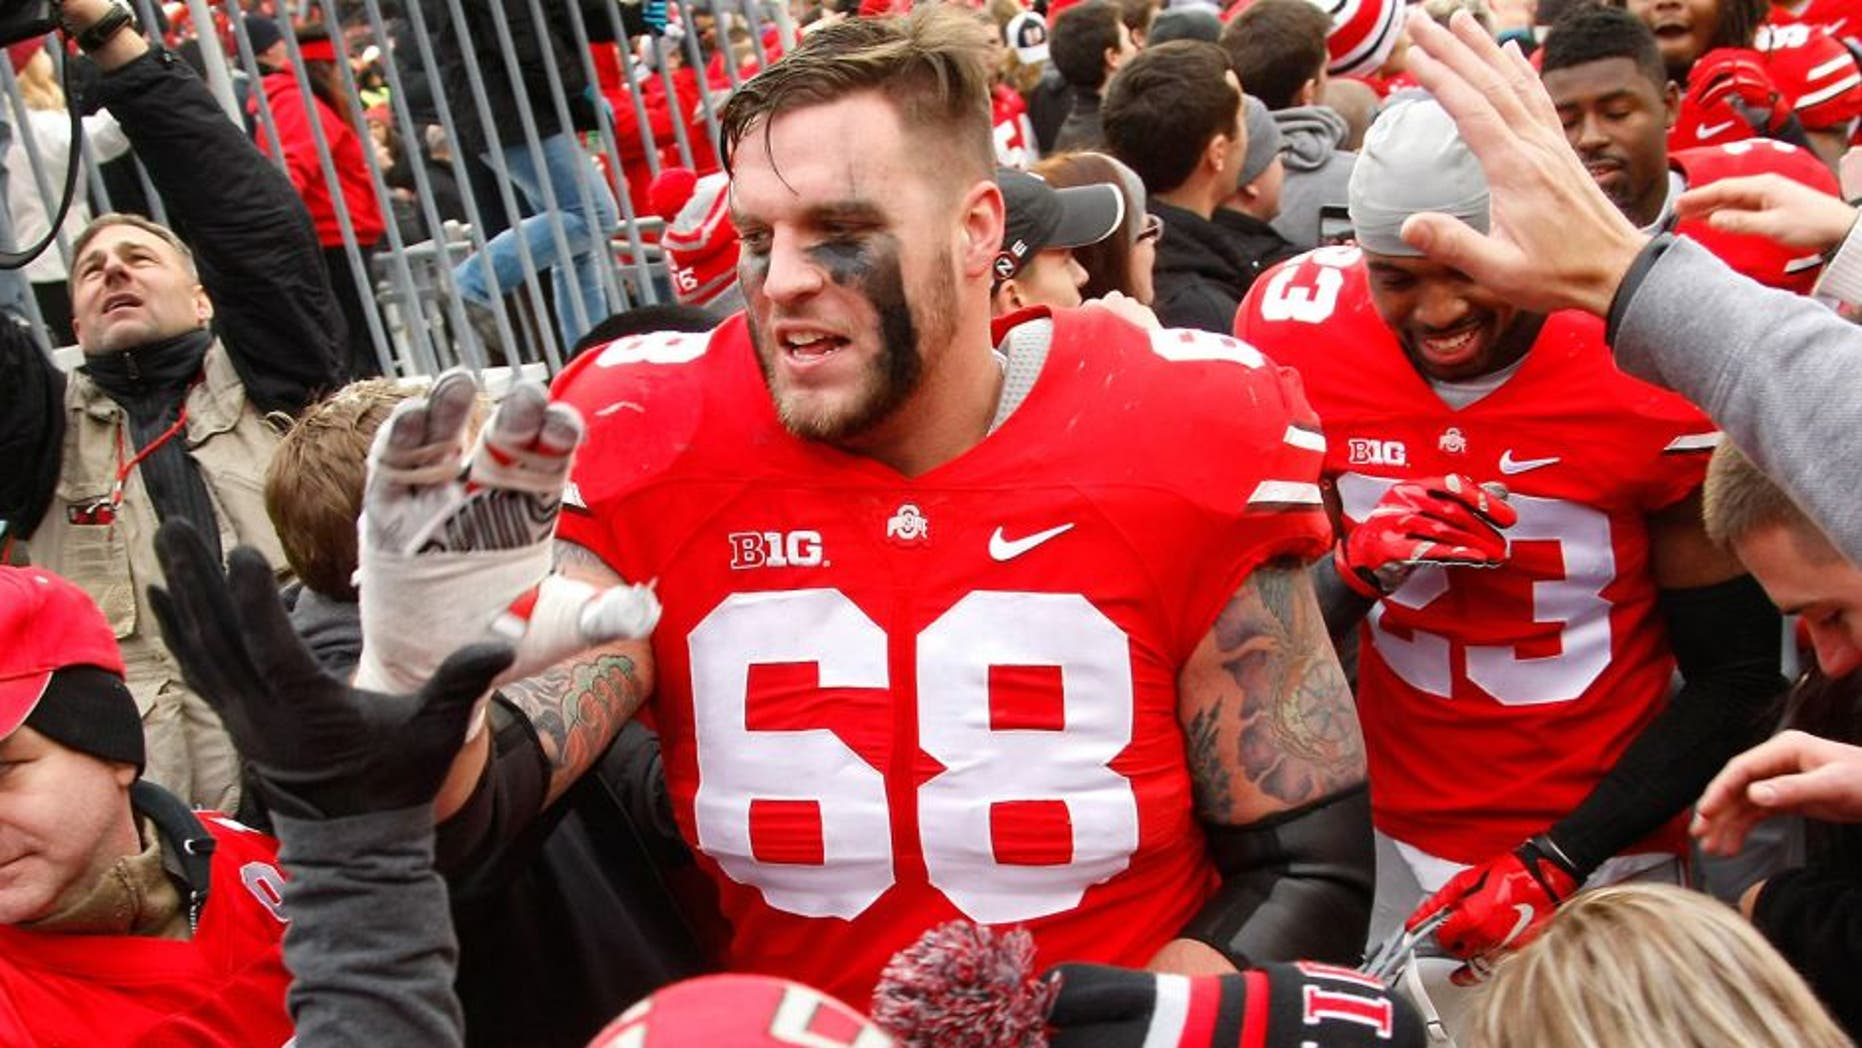 Nov 29, 2014; Columbus, OH, USA; Ohio State Buckeyes offensive lineman Taylor Decker (68) celebrates with fans following the game versus the Michigan Wolverines at Ohio Stadium. Ohio State won the game 42-28. Mandatory Credit: Joe Maiorana-USA TODAY Sports